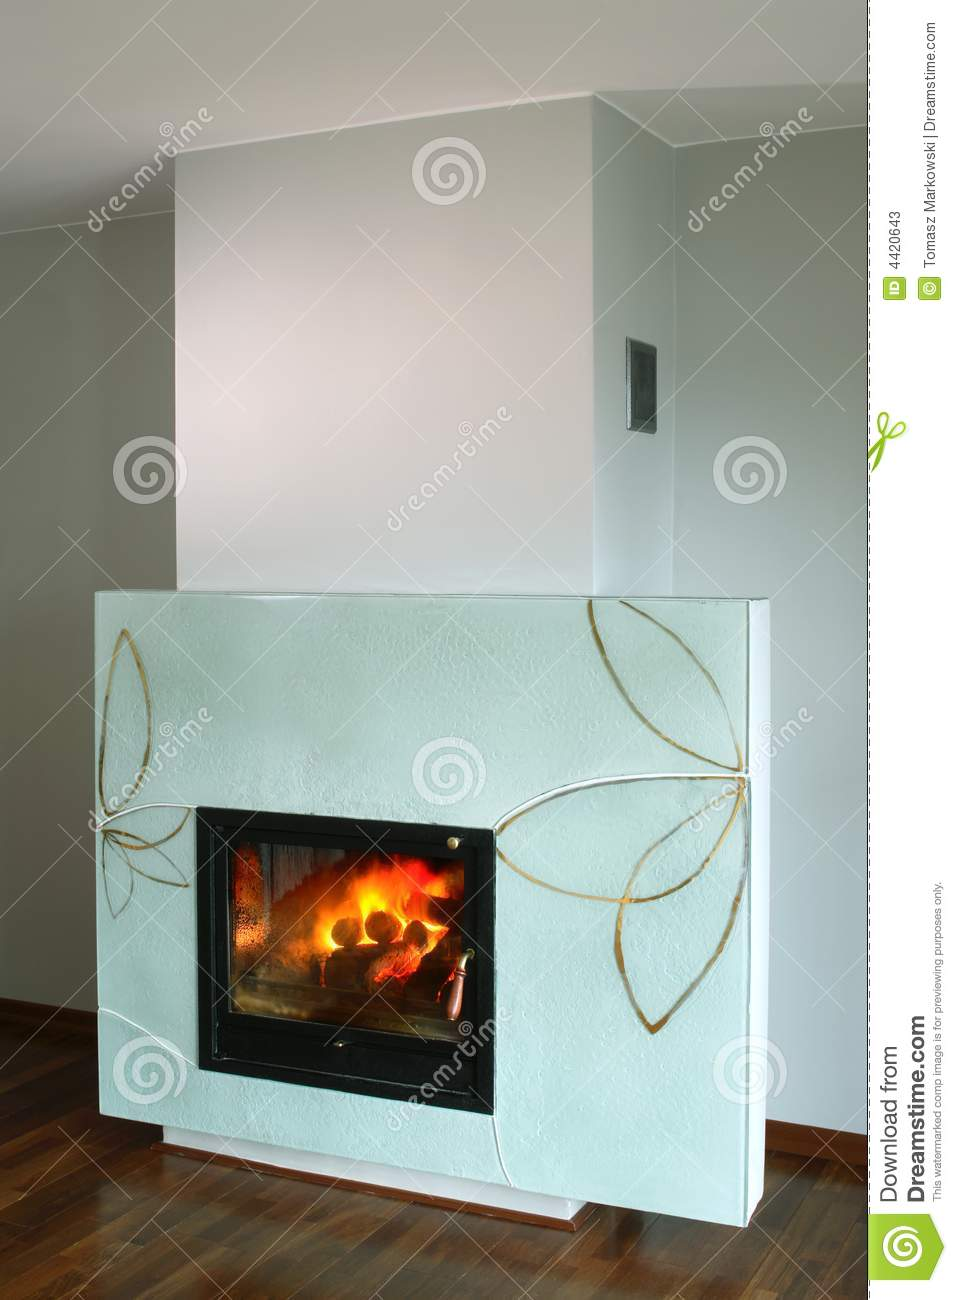 Fireplace With Glass Surround Stock Photos  Image 4420643